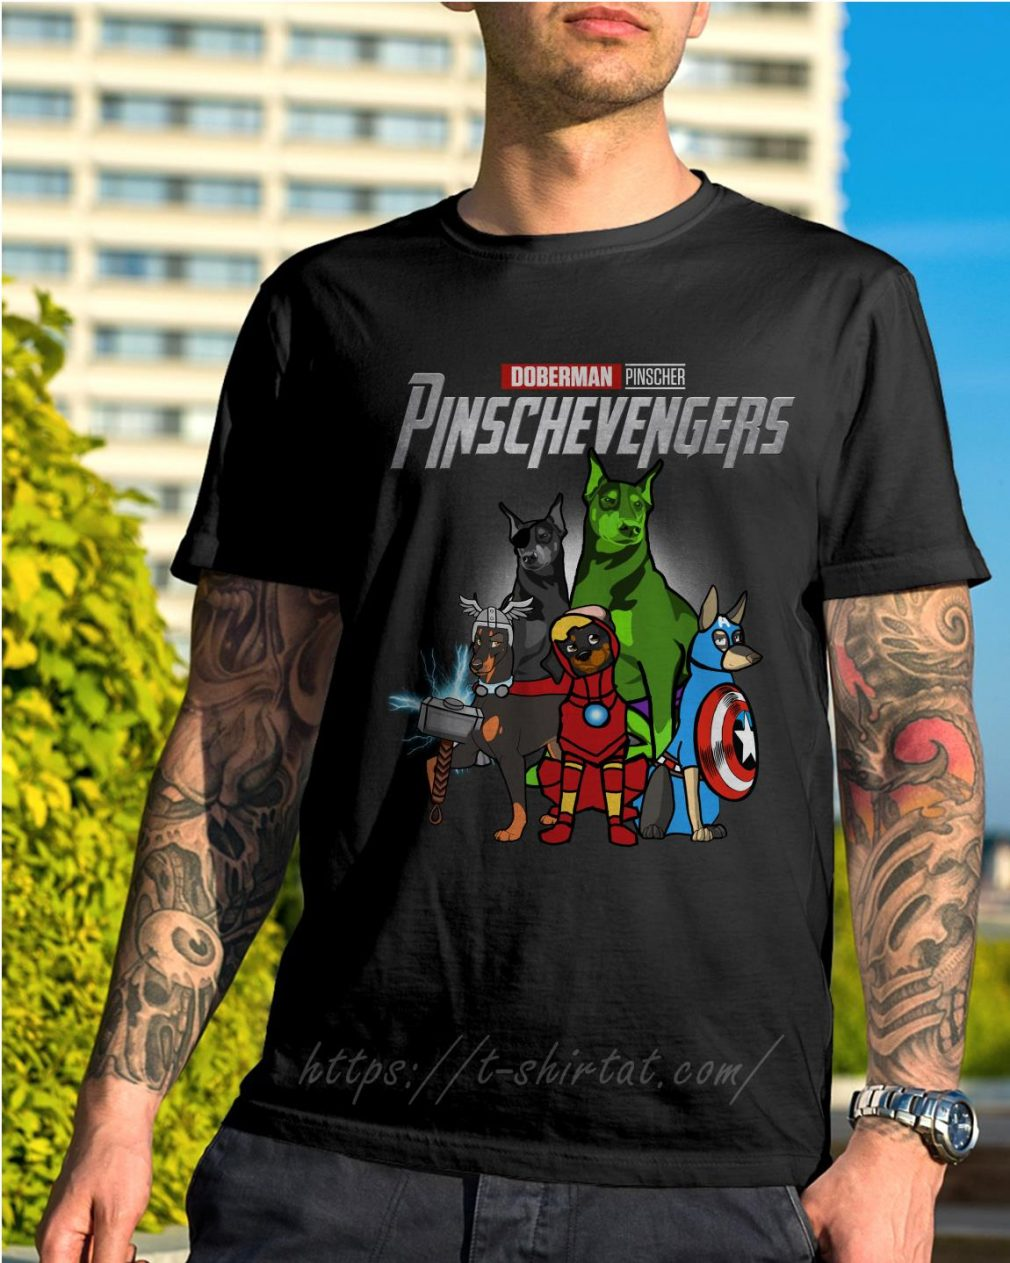 Marvel Doberman Pinscher Pinschevengers shirt